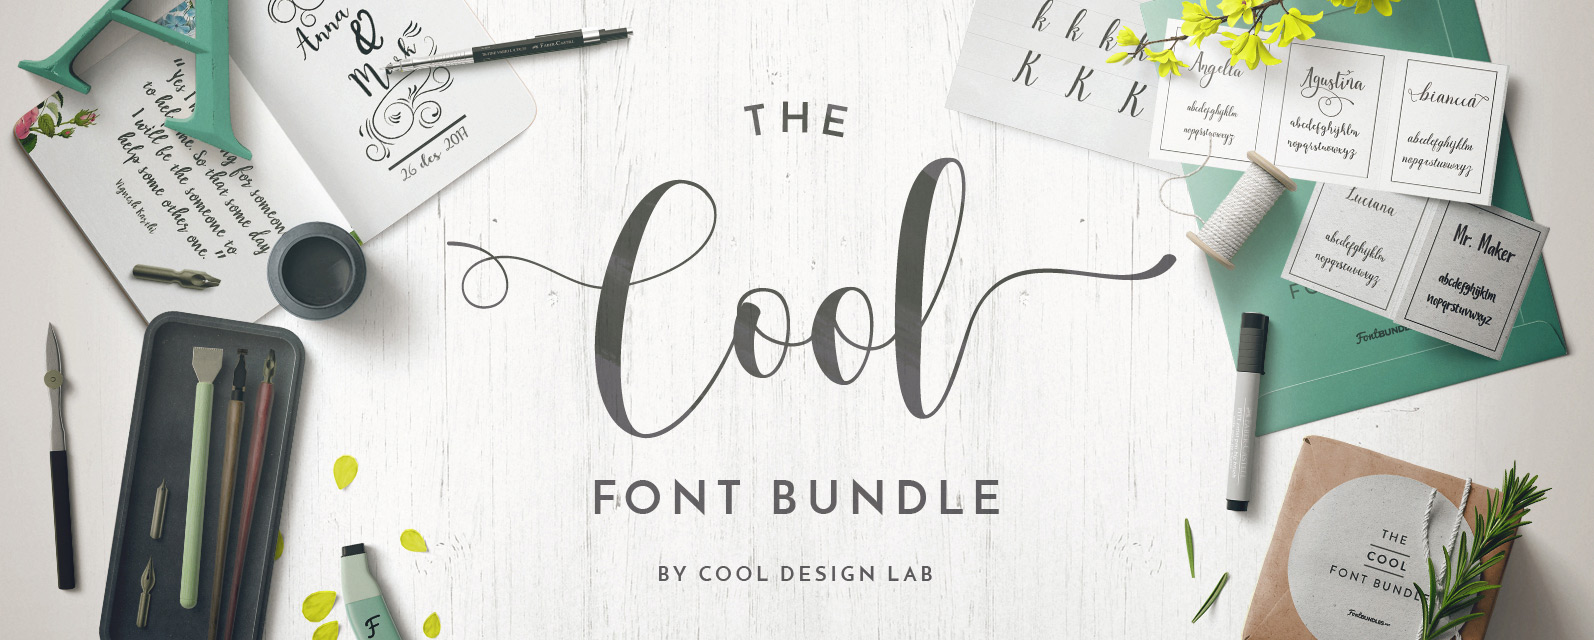 Cool Font Bundle Cover